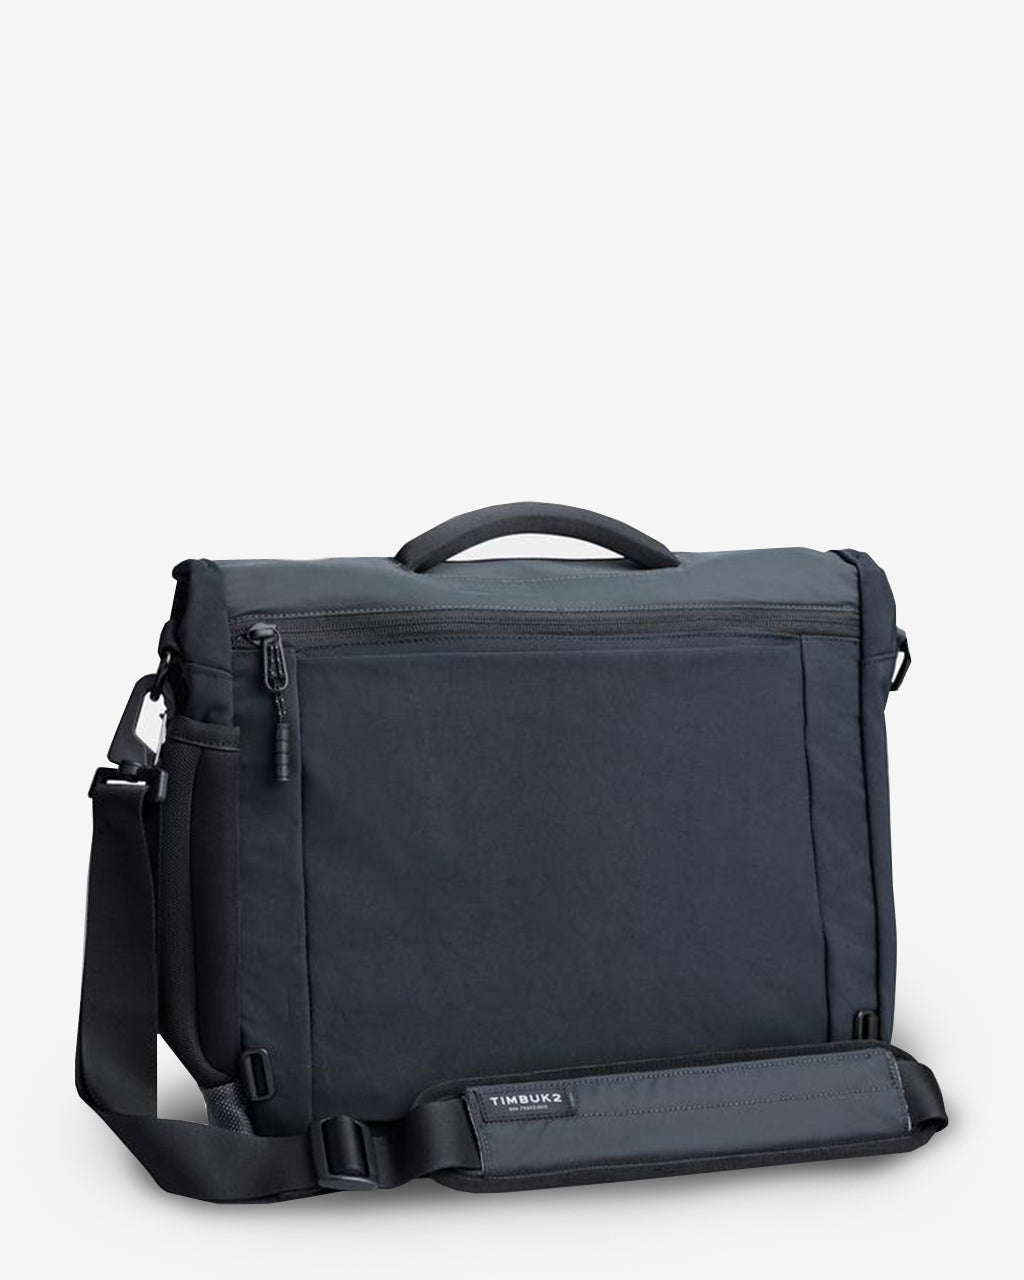 6c33b235ace Timbuk2 The Closer Case - Medium Briefcase – BrandsWalk